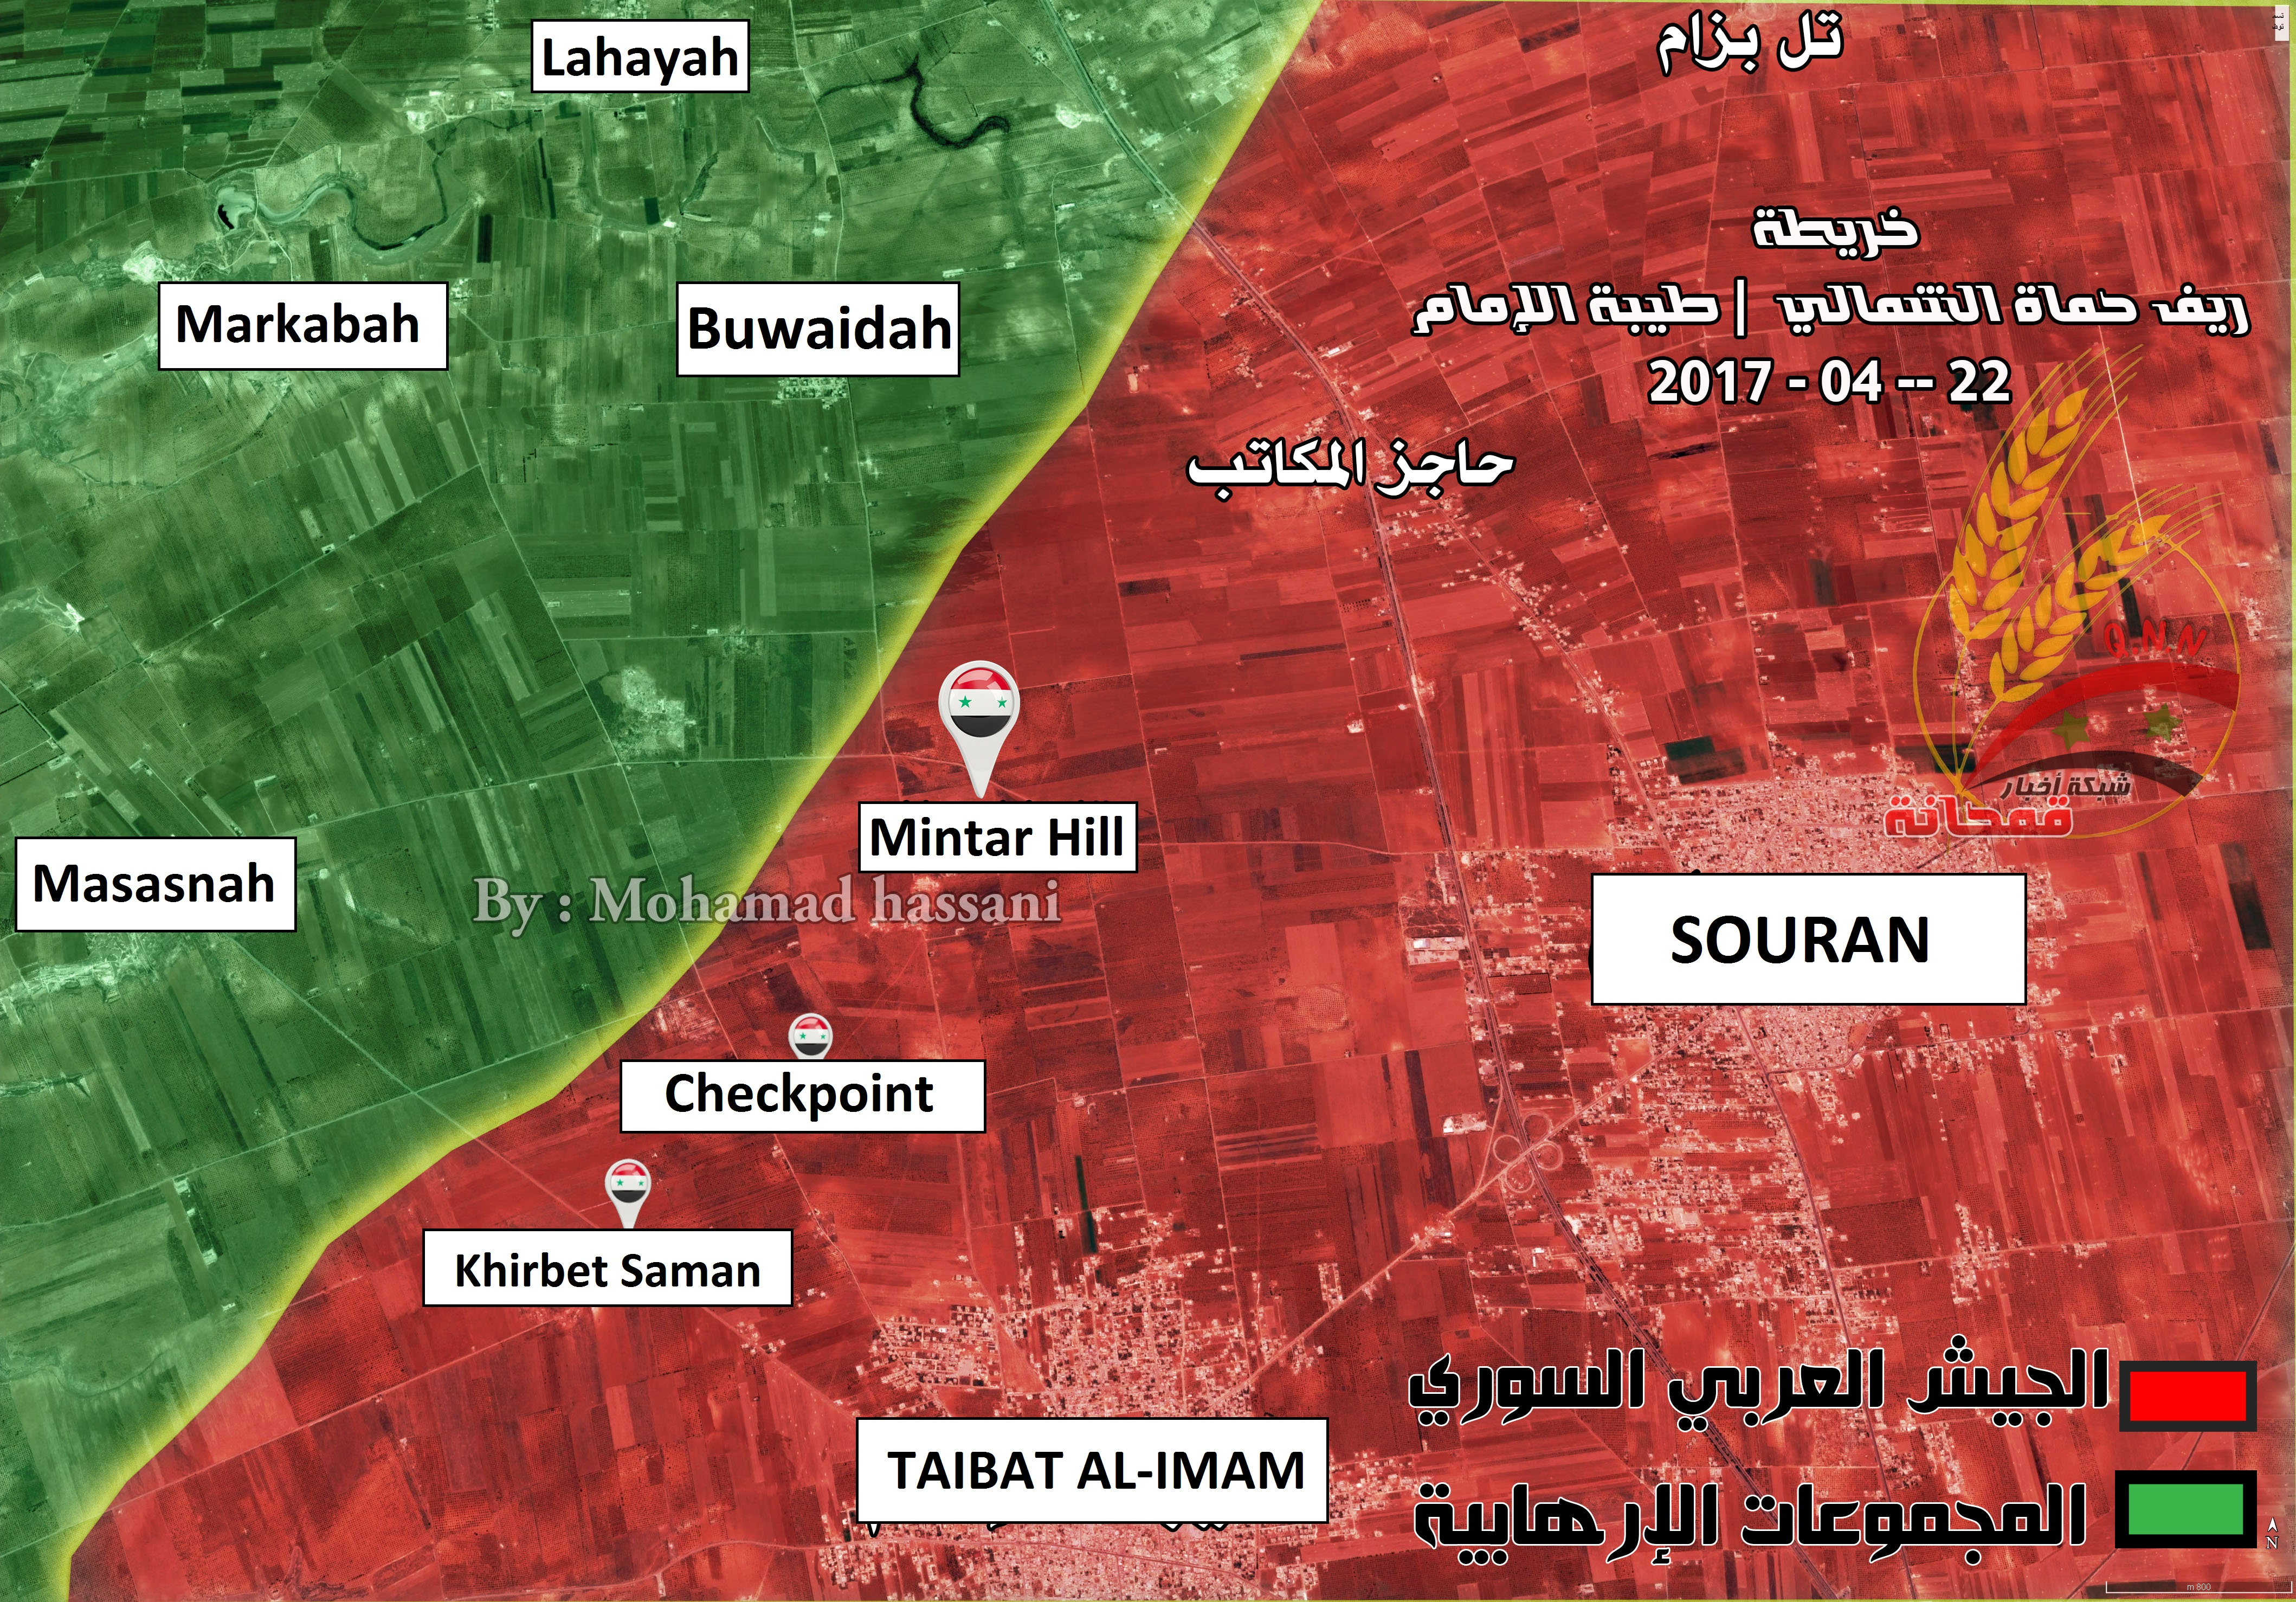 Tiger Forces And 5th Assault Corps Rapidly Advancing On Buwaidah And Masasnah In Northern Hama (Maps, Analysis)